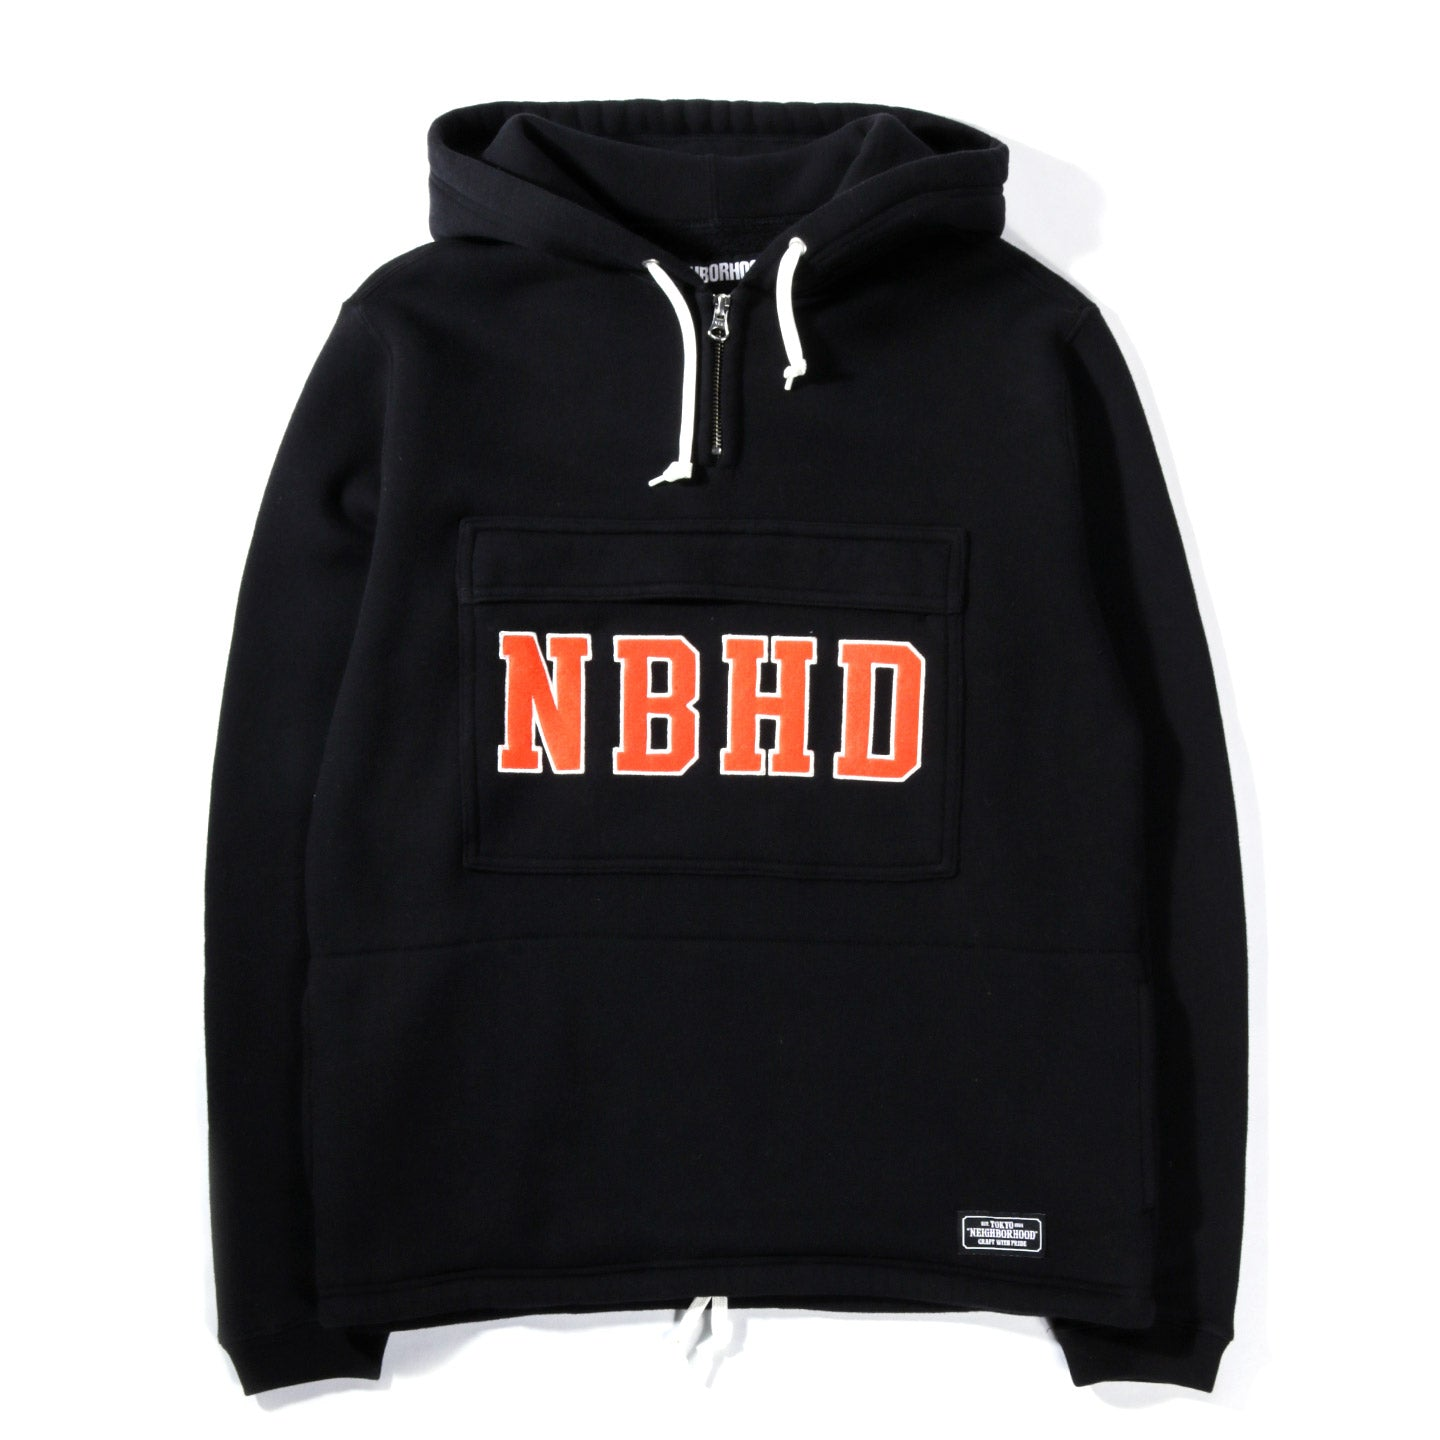 NEIGHBORHOOD LOGIC HOODED SWEATSHIRT BLACK